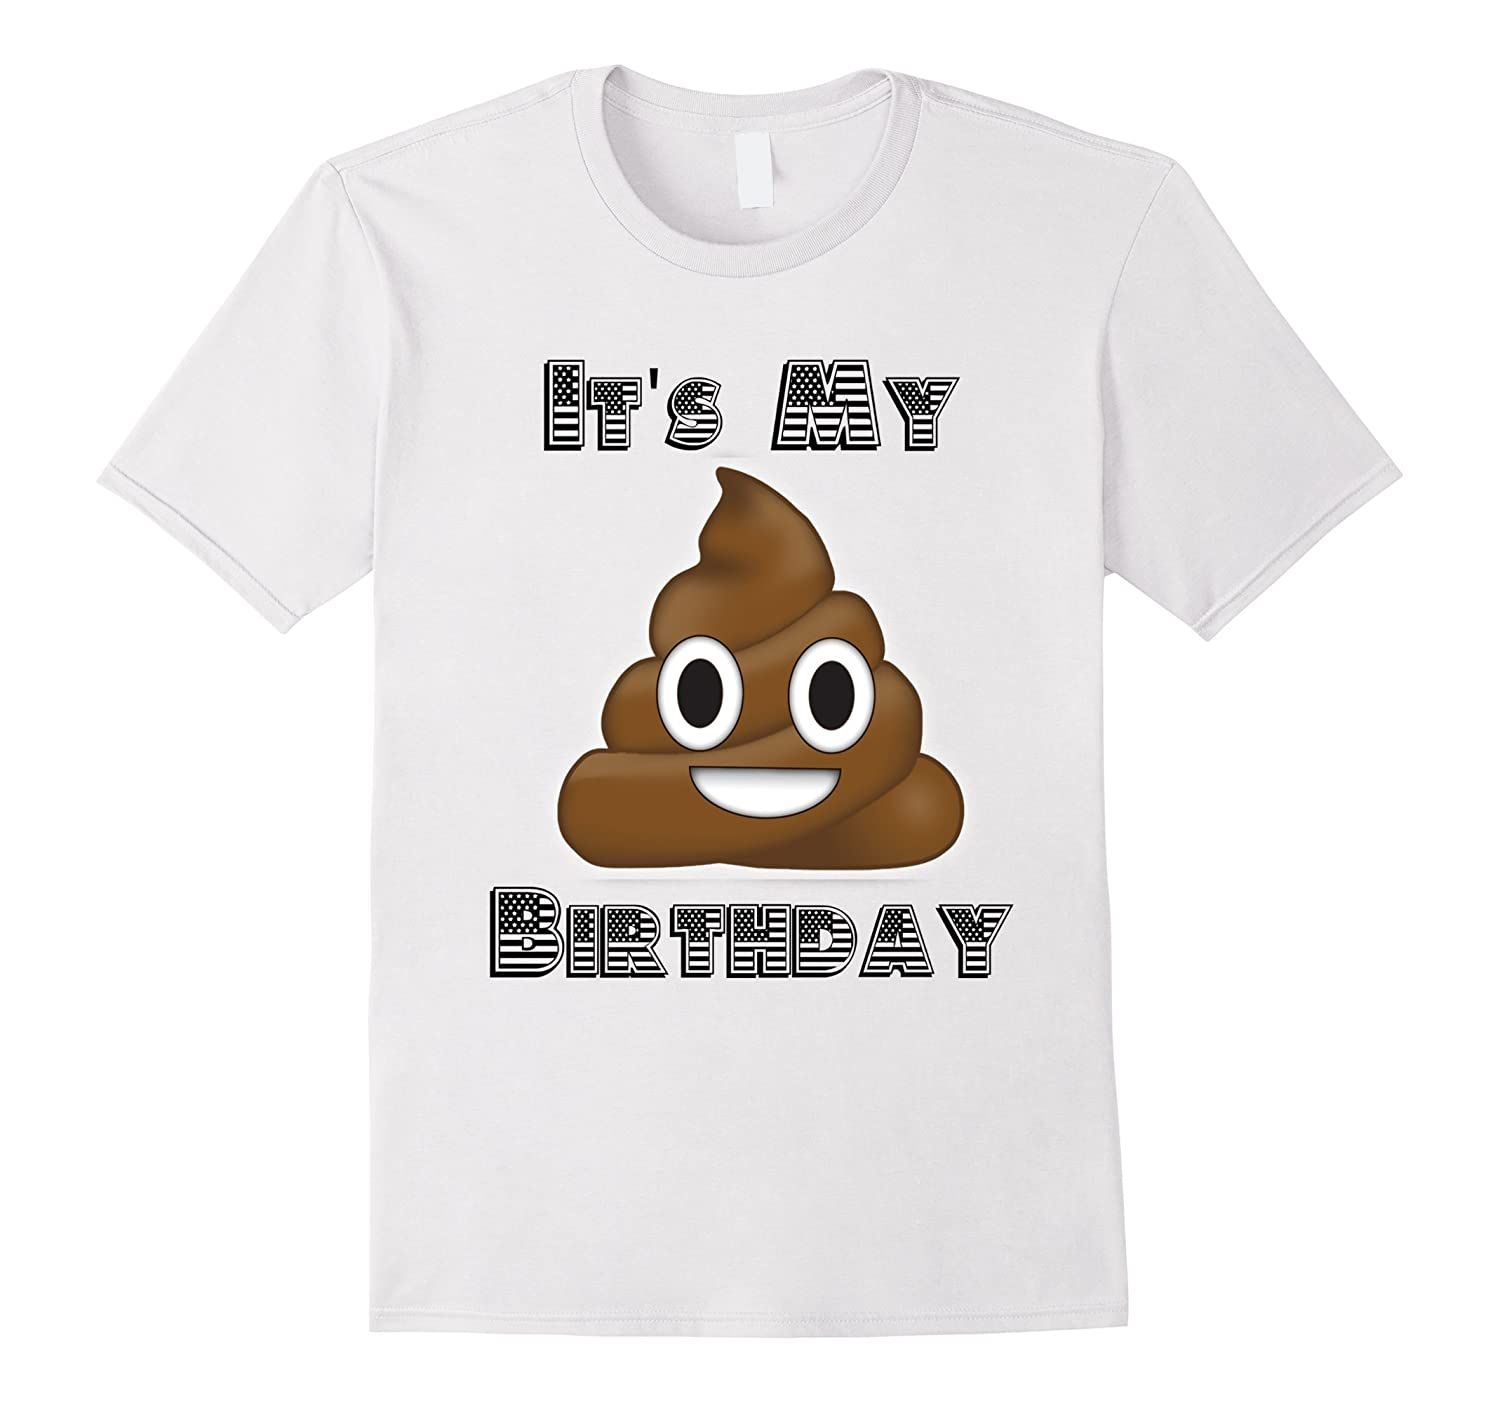 Poop Emoji Birthday T Shirts For Boys Girls Kids Gift